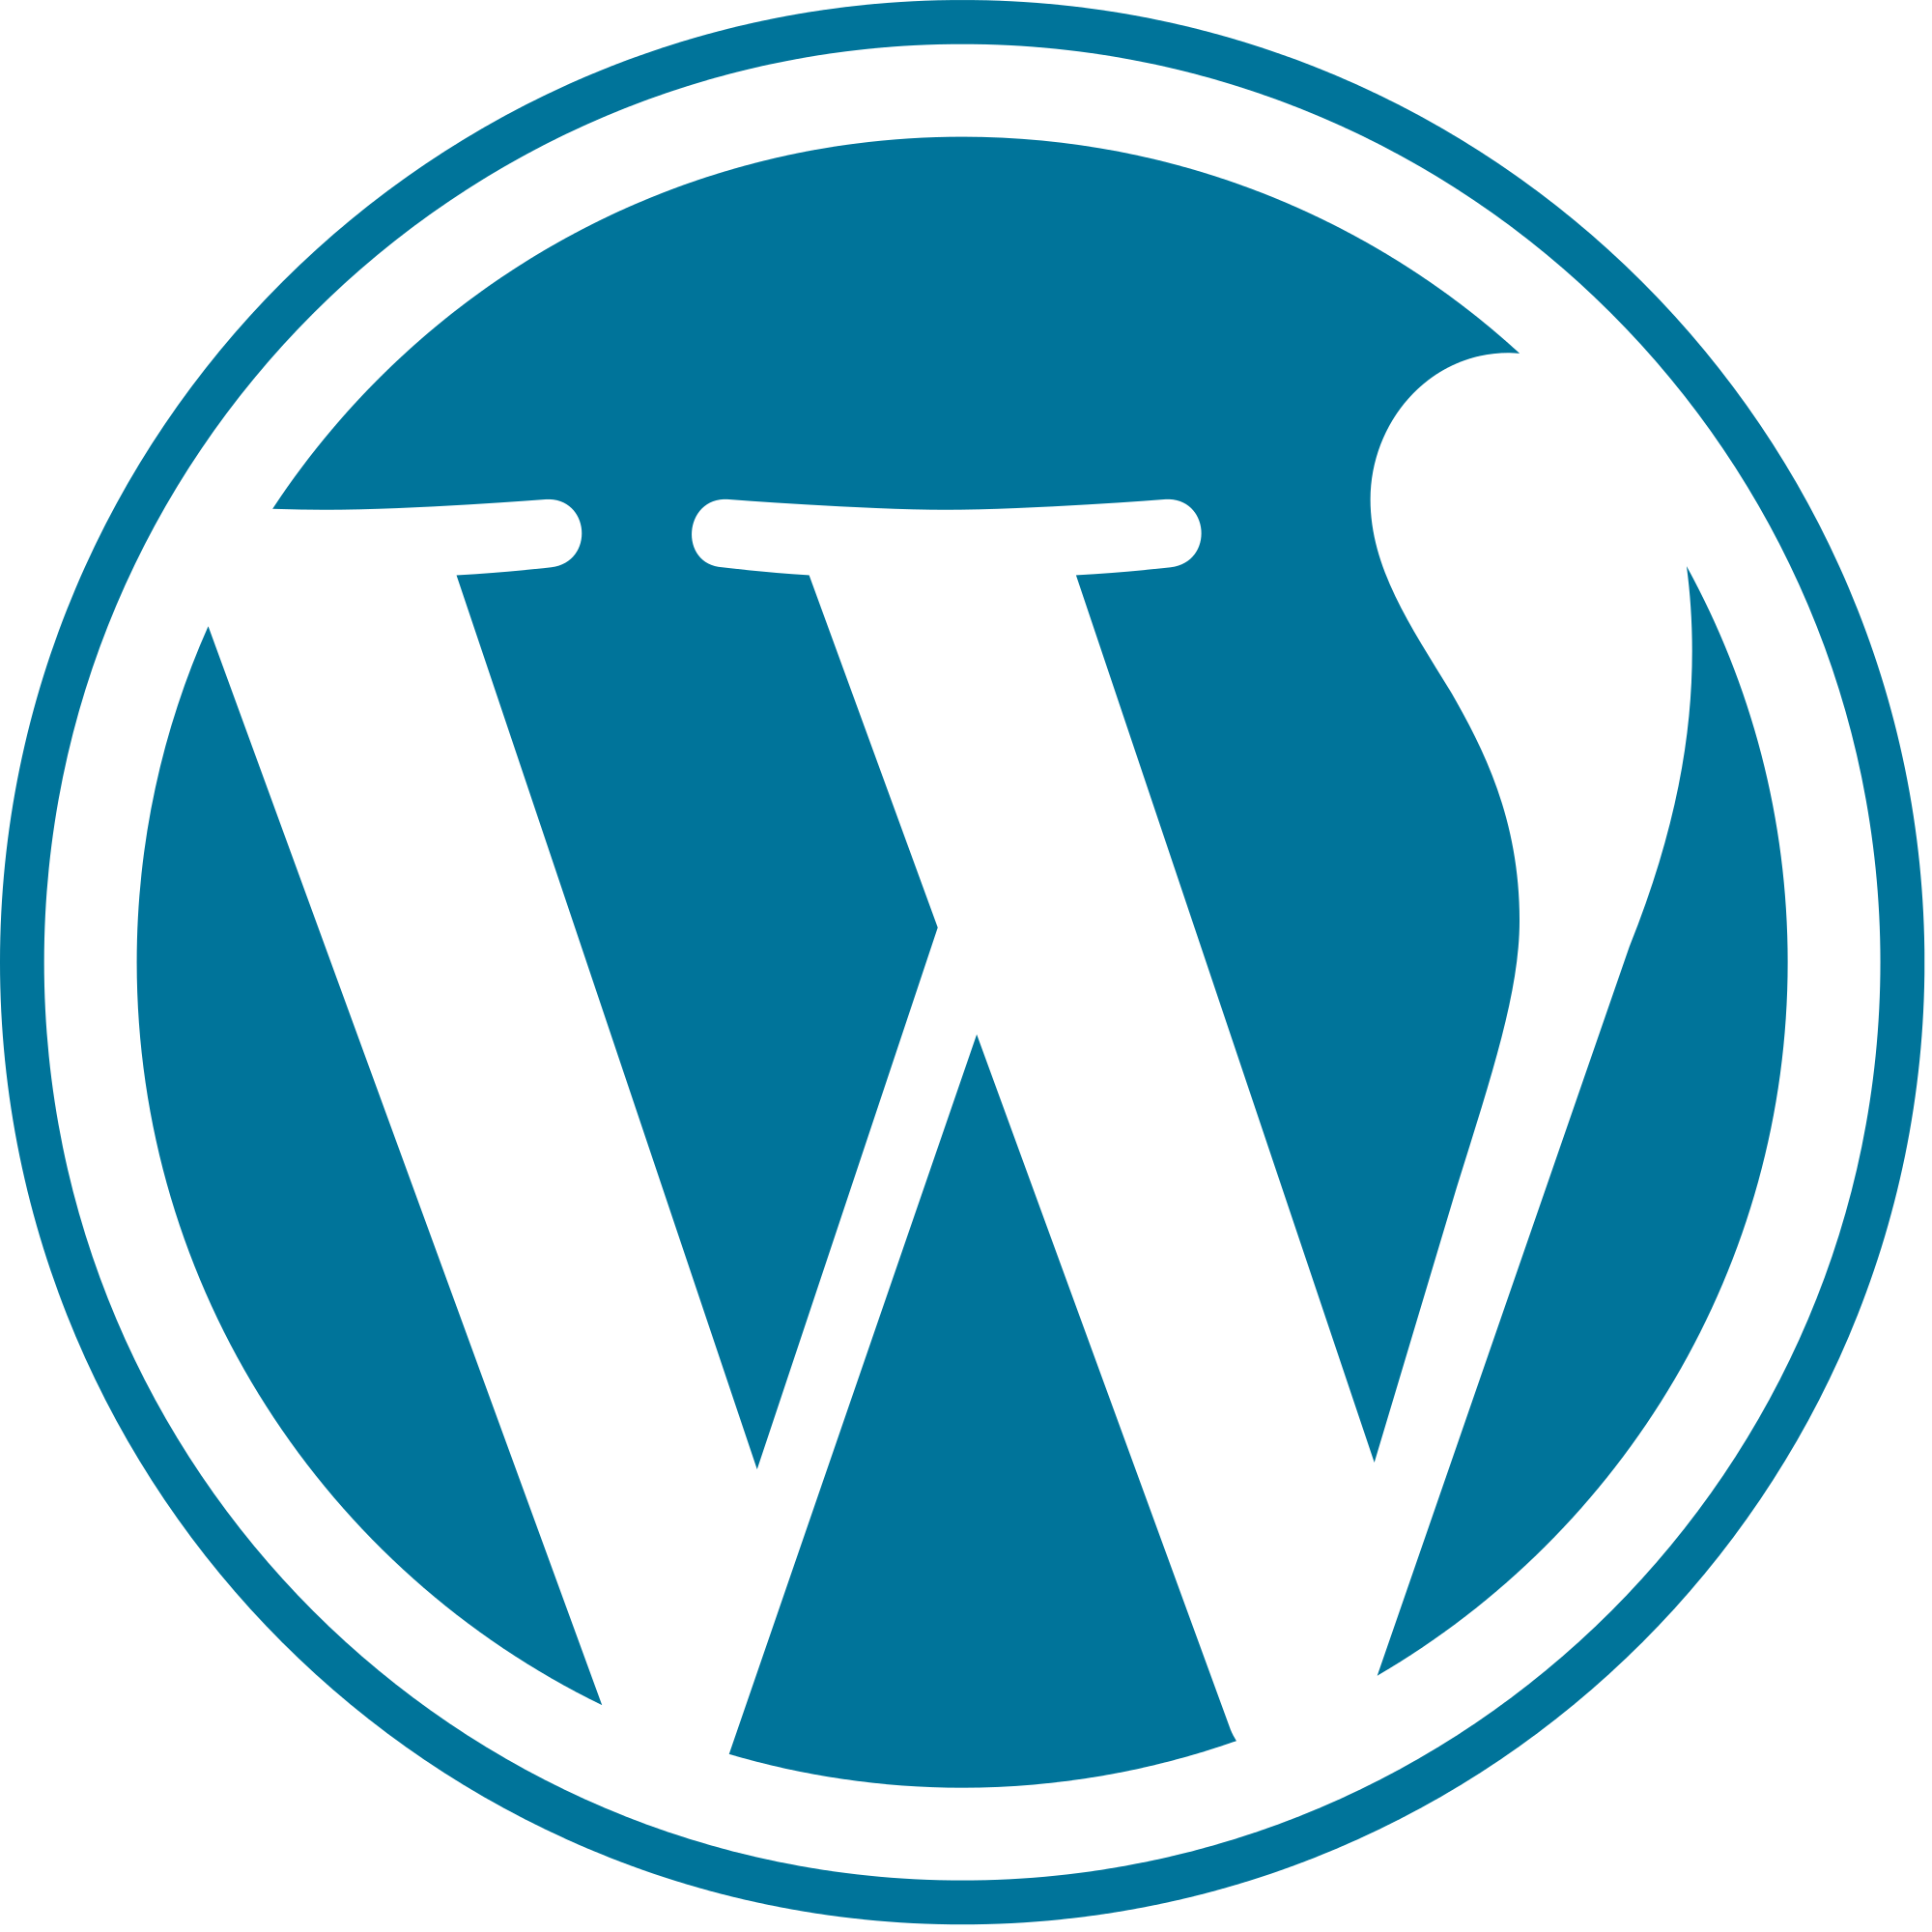 Come trasferire wordpress da un dominio ad un altro